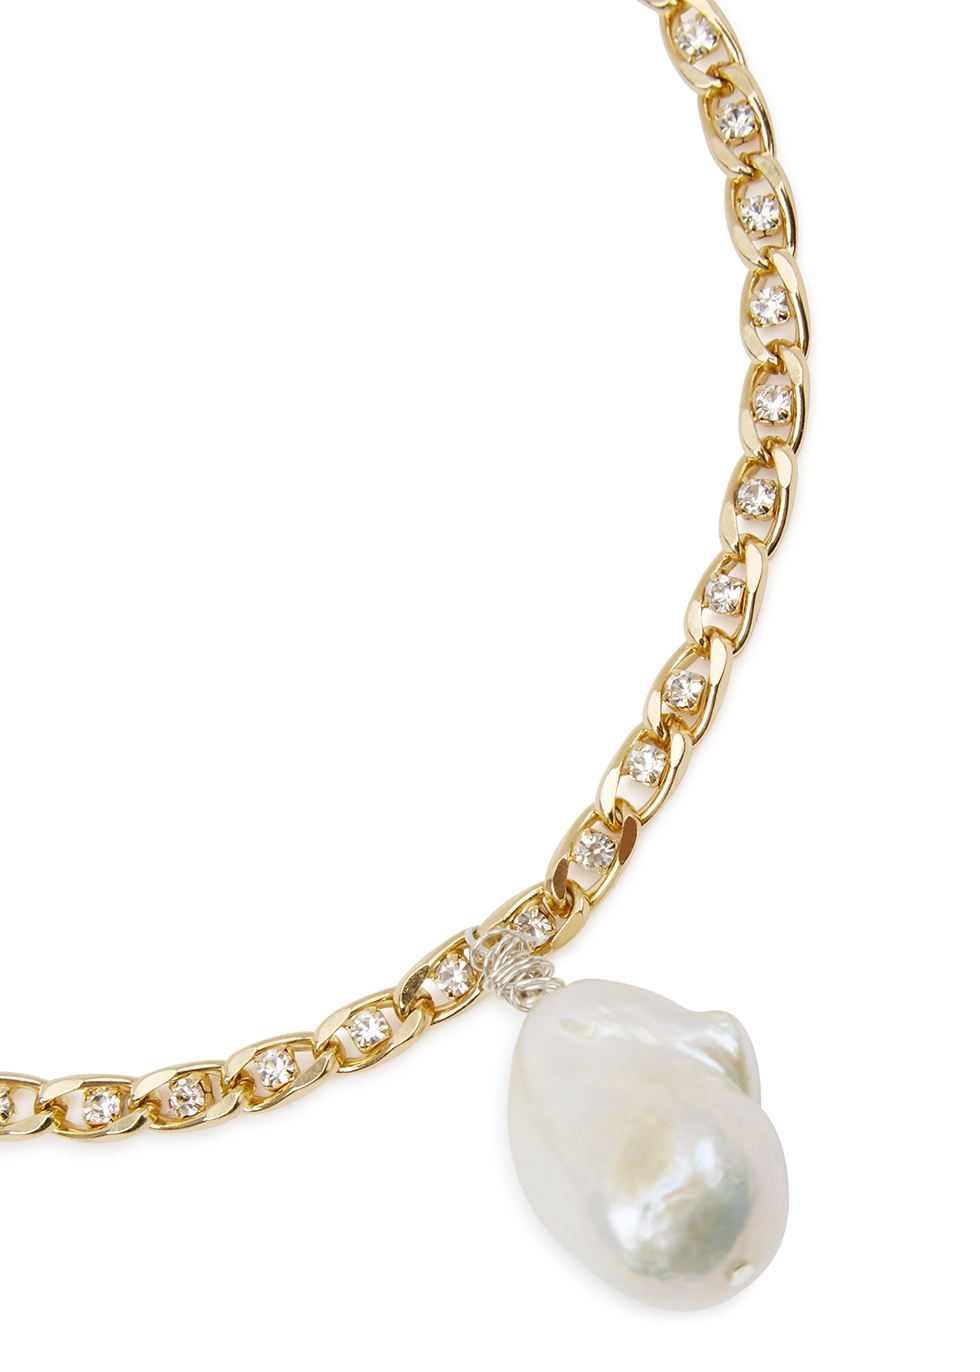 Le Chic 18kt gold-plated choker - WALD Berlin